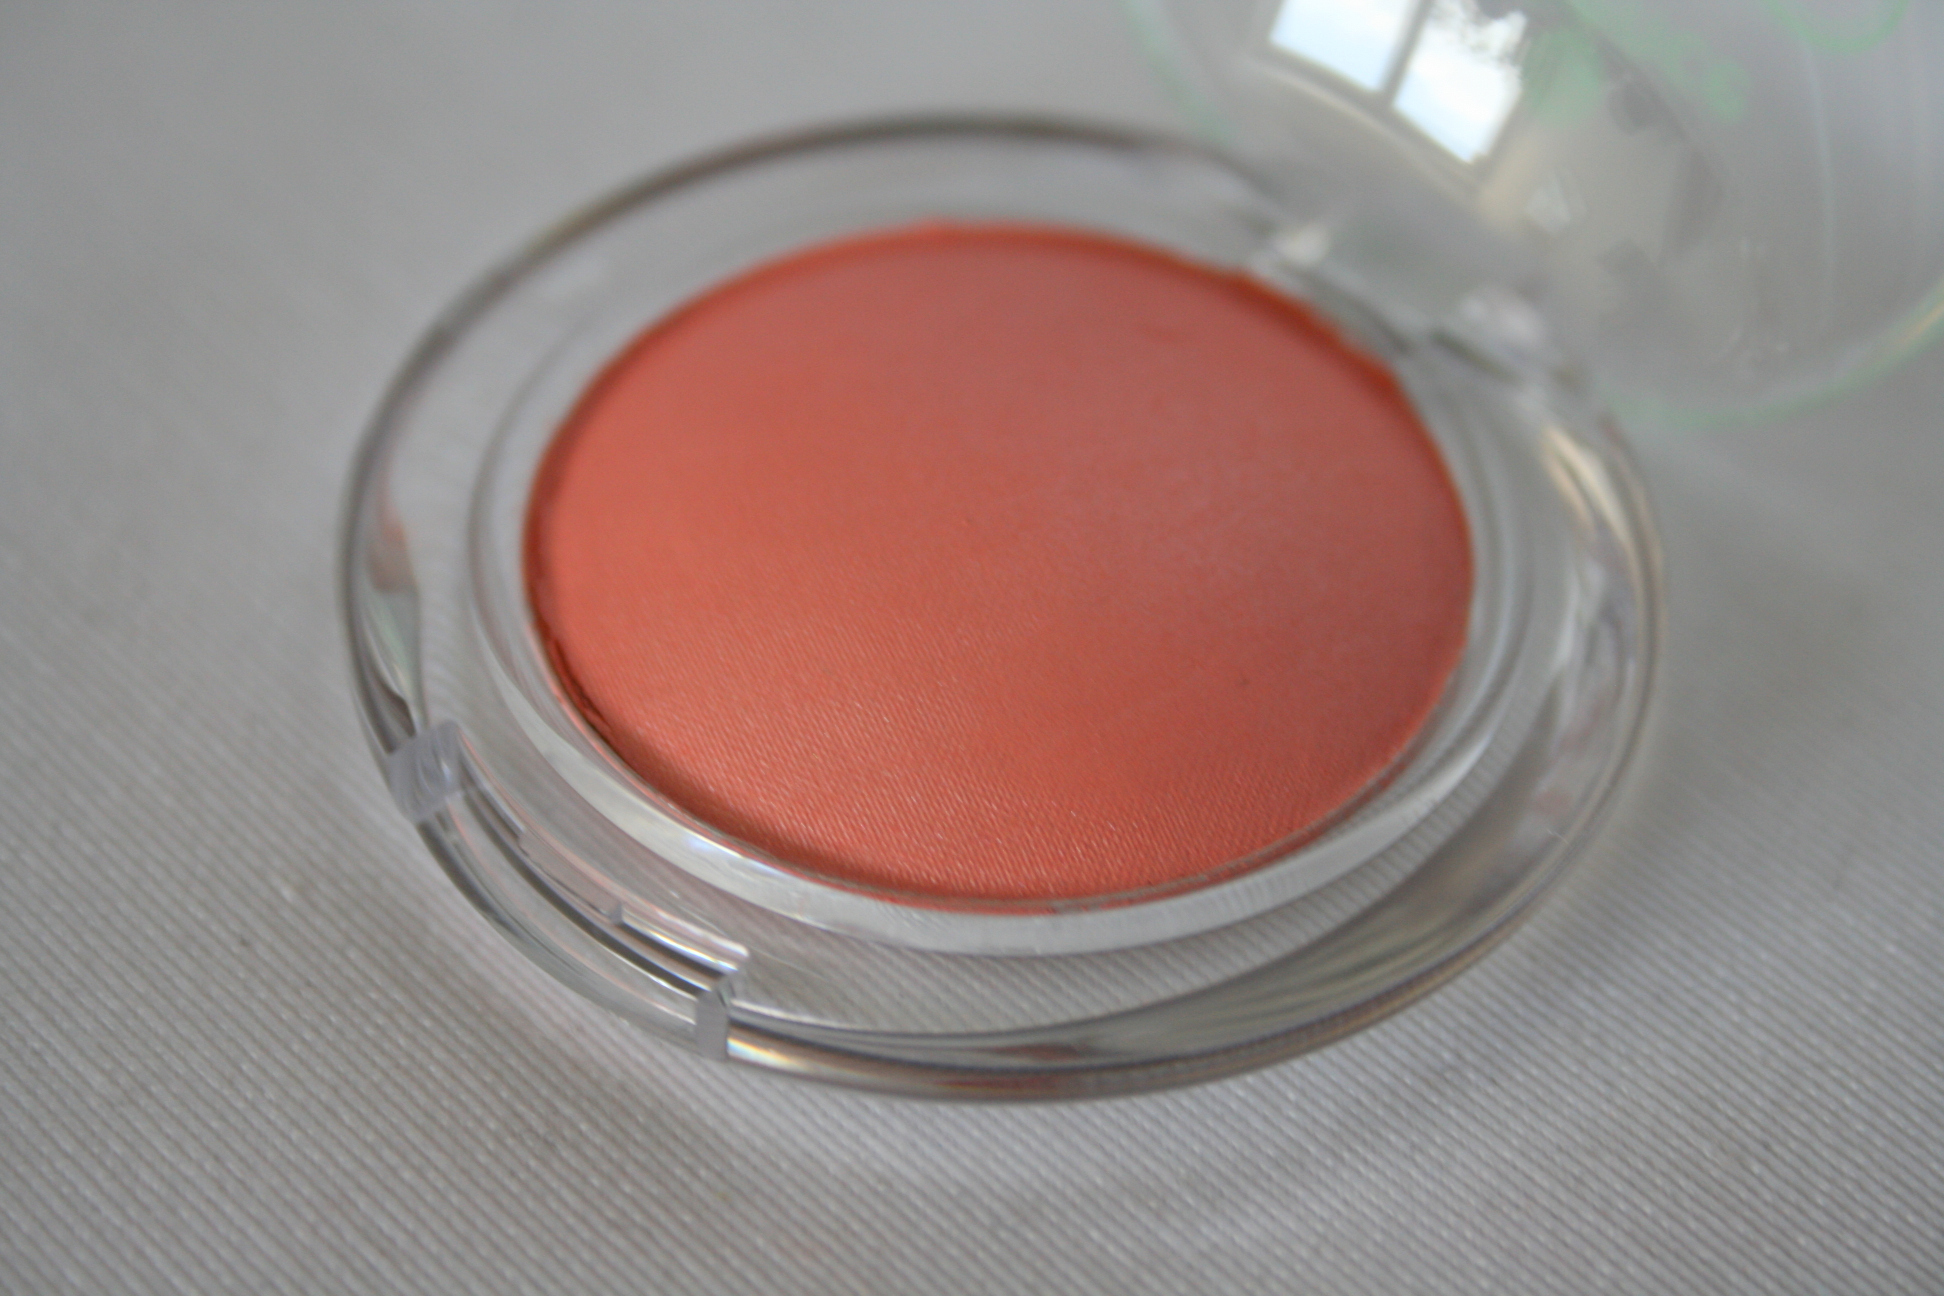 Essence Me  My Icecream Blush Swatches 2